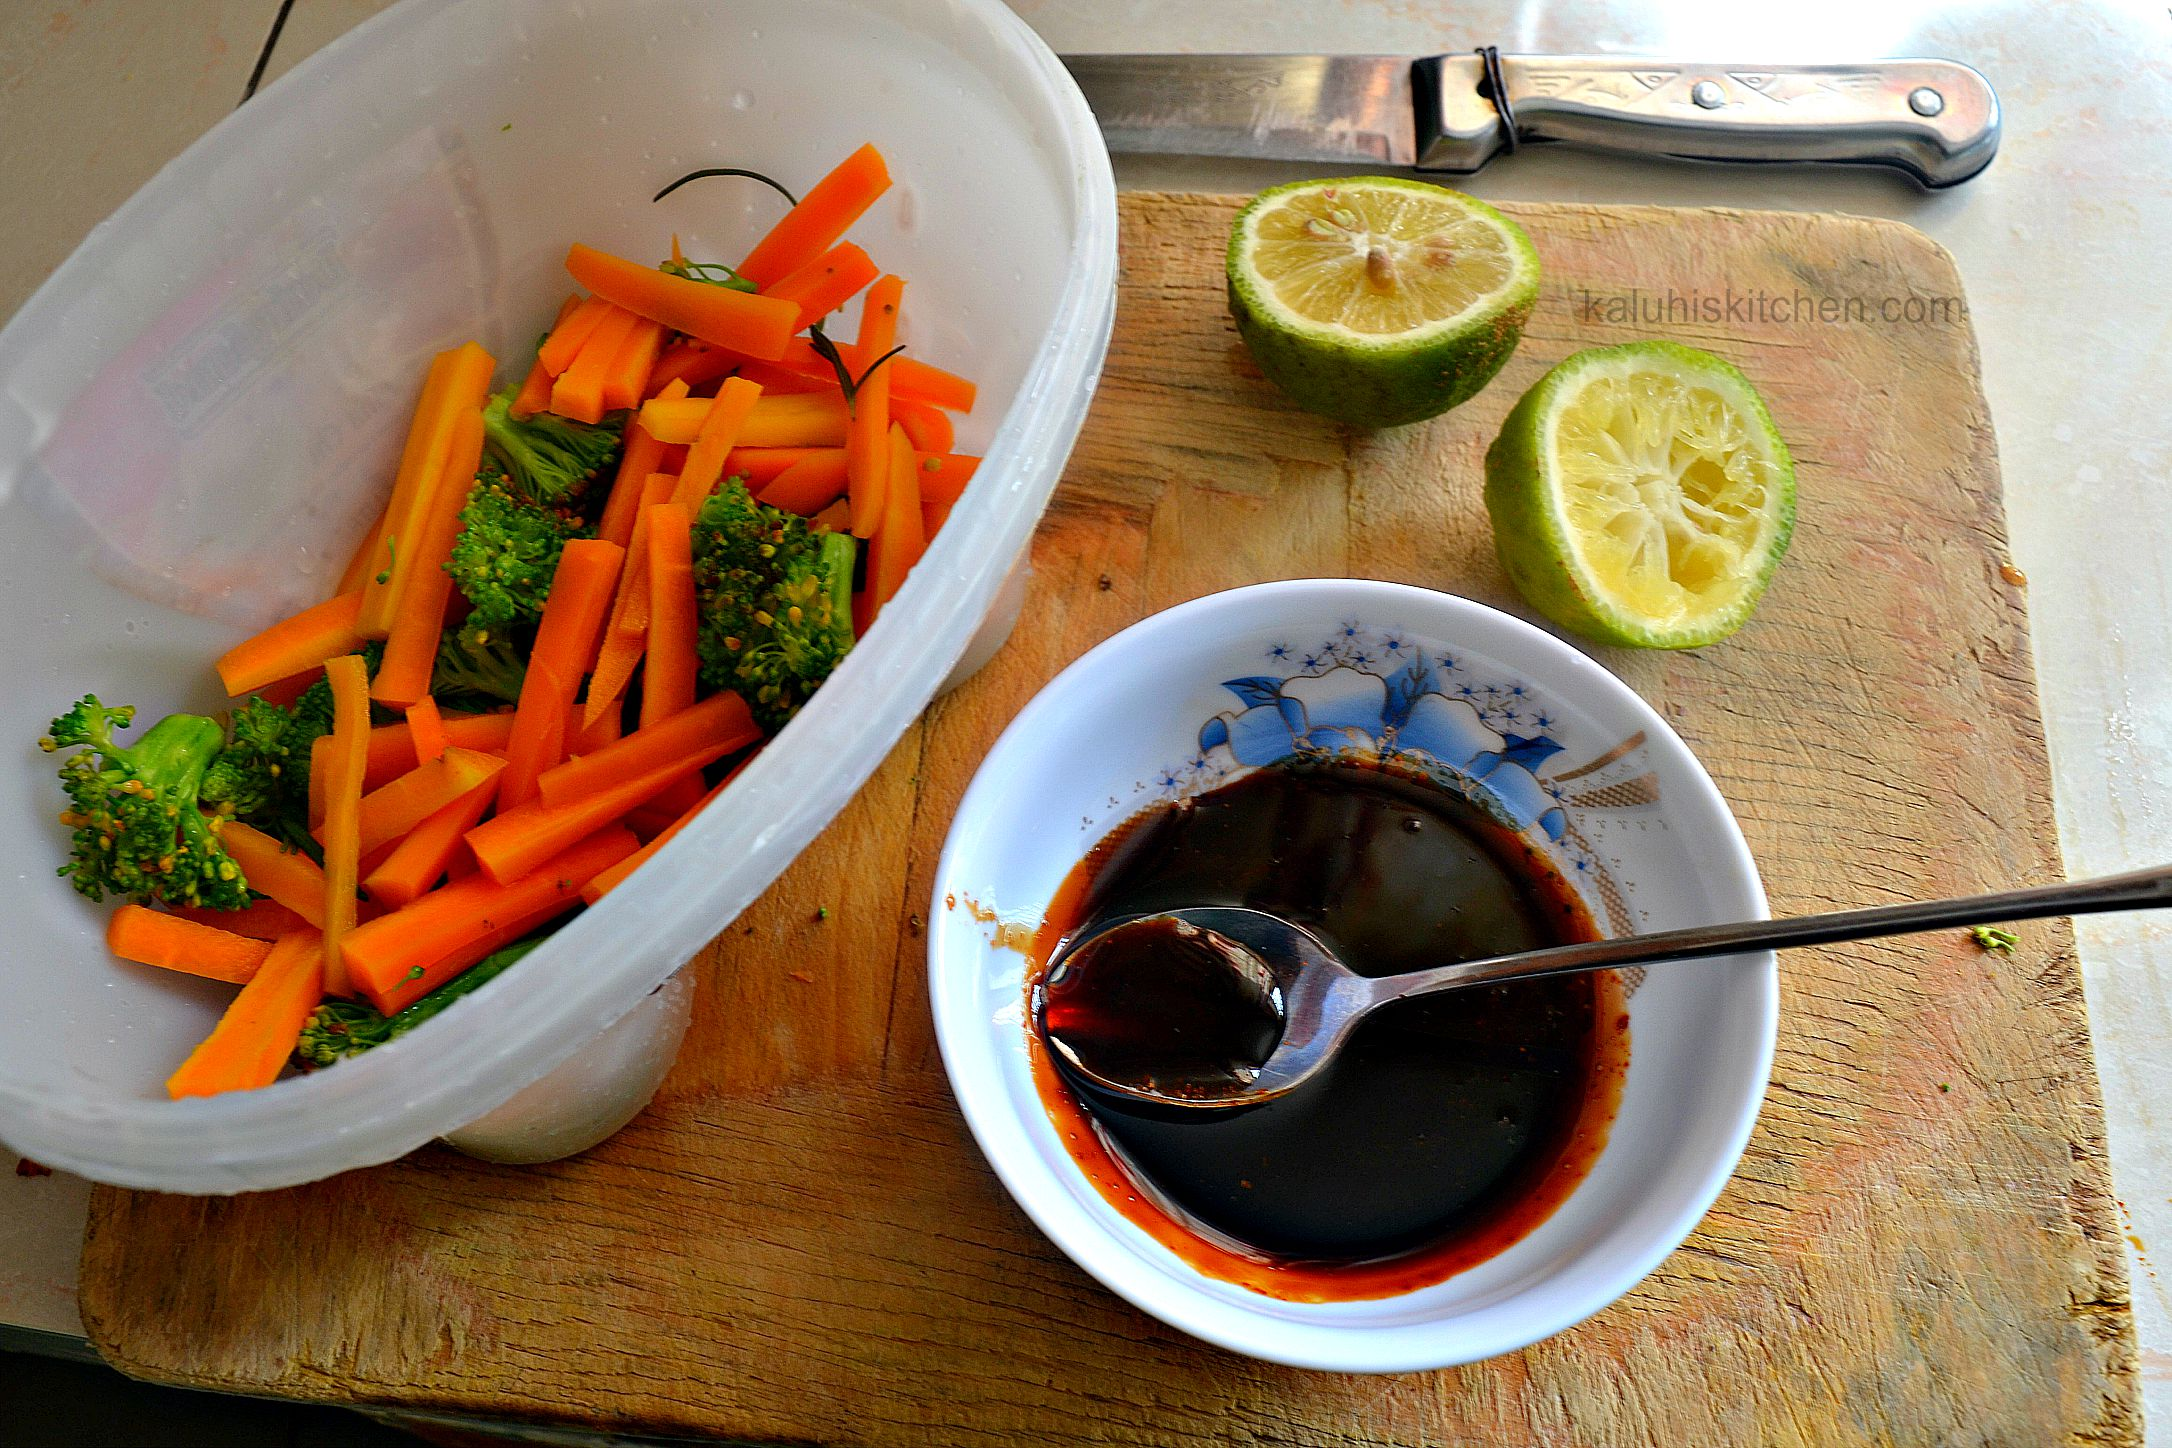 steamed broccoli and carrots for retain the oringinal color and nutrients of the vegetable_kaluhiskitchen.com